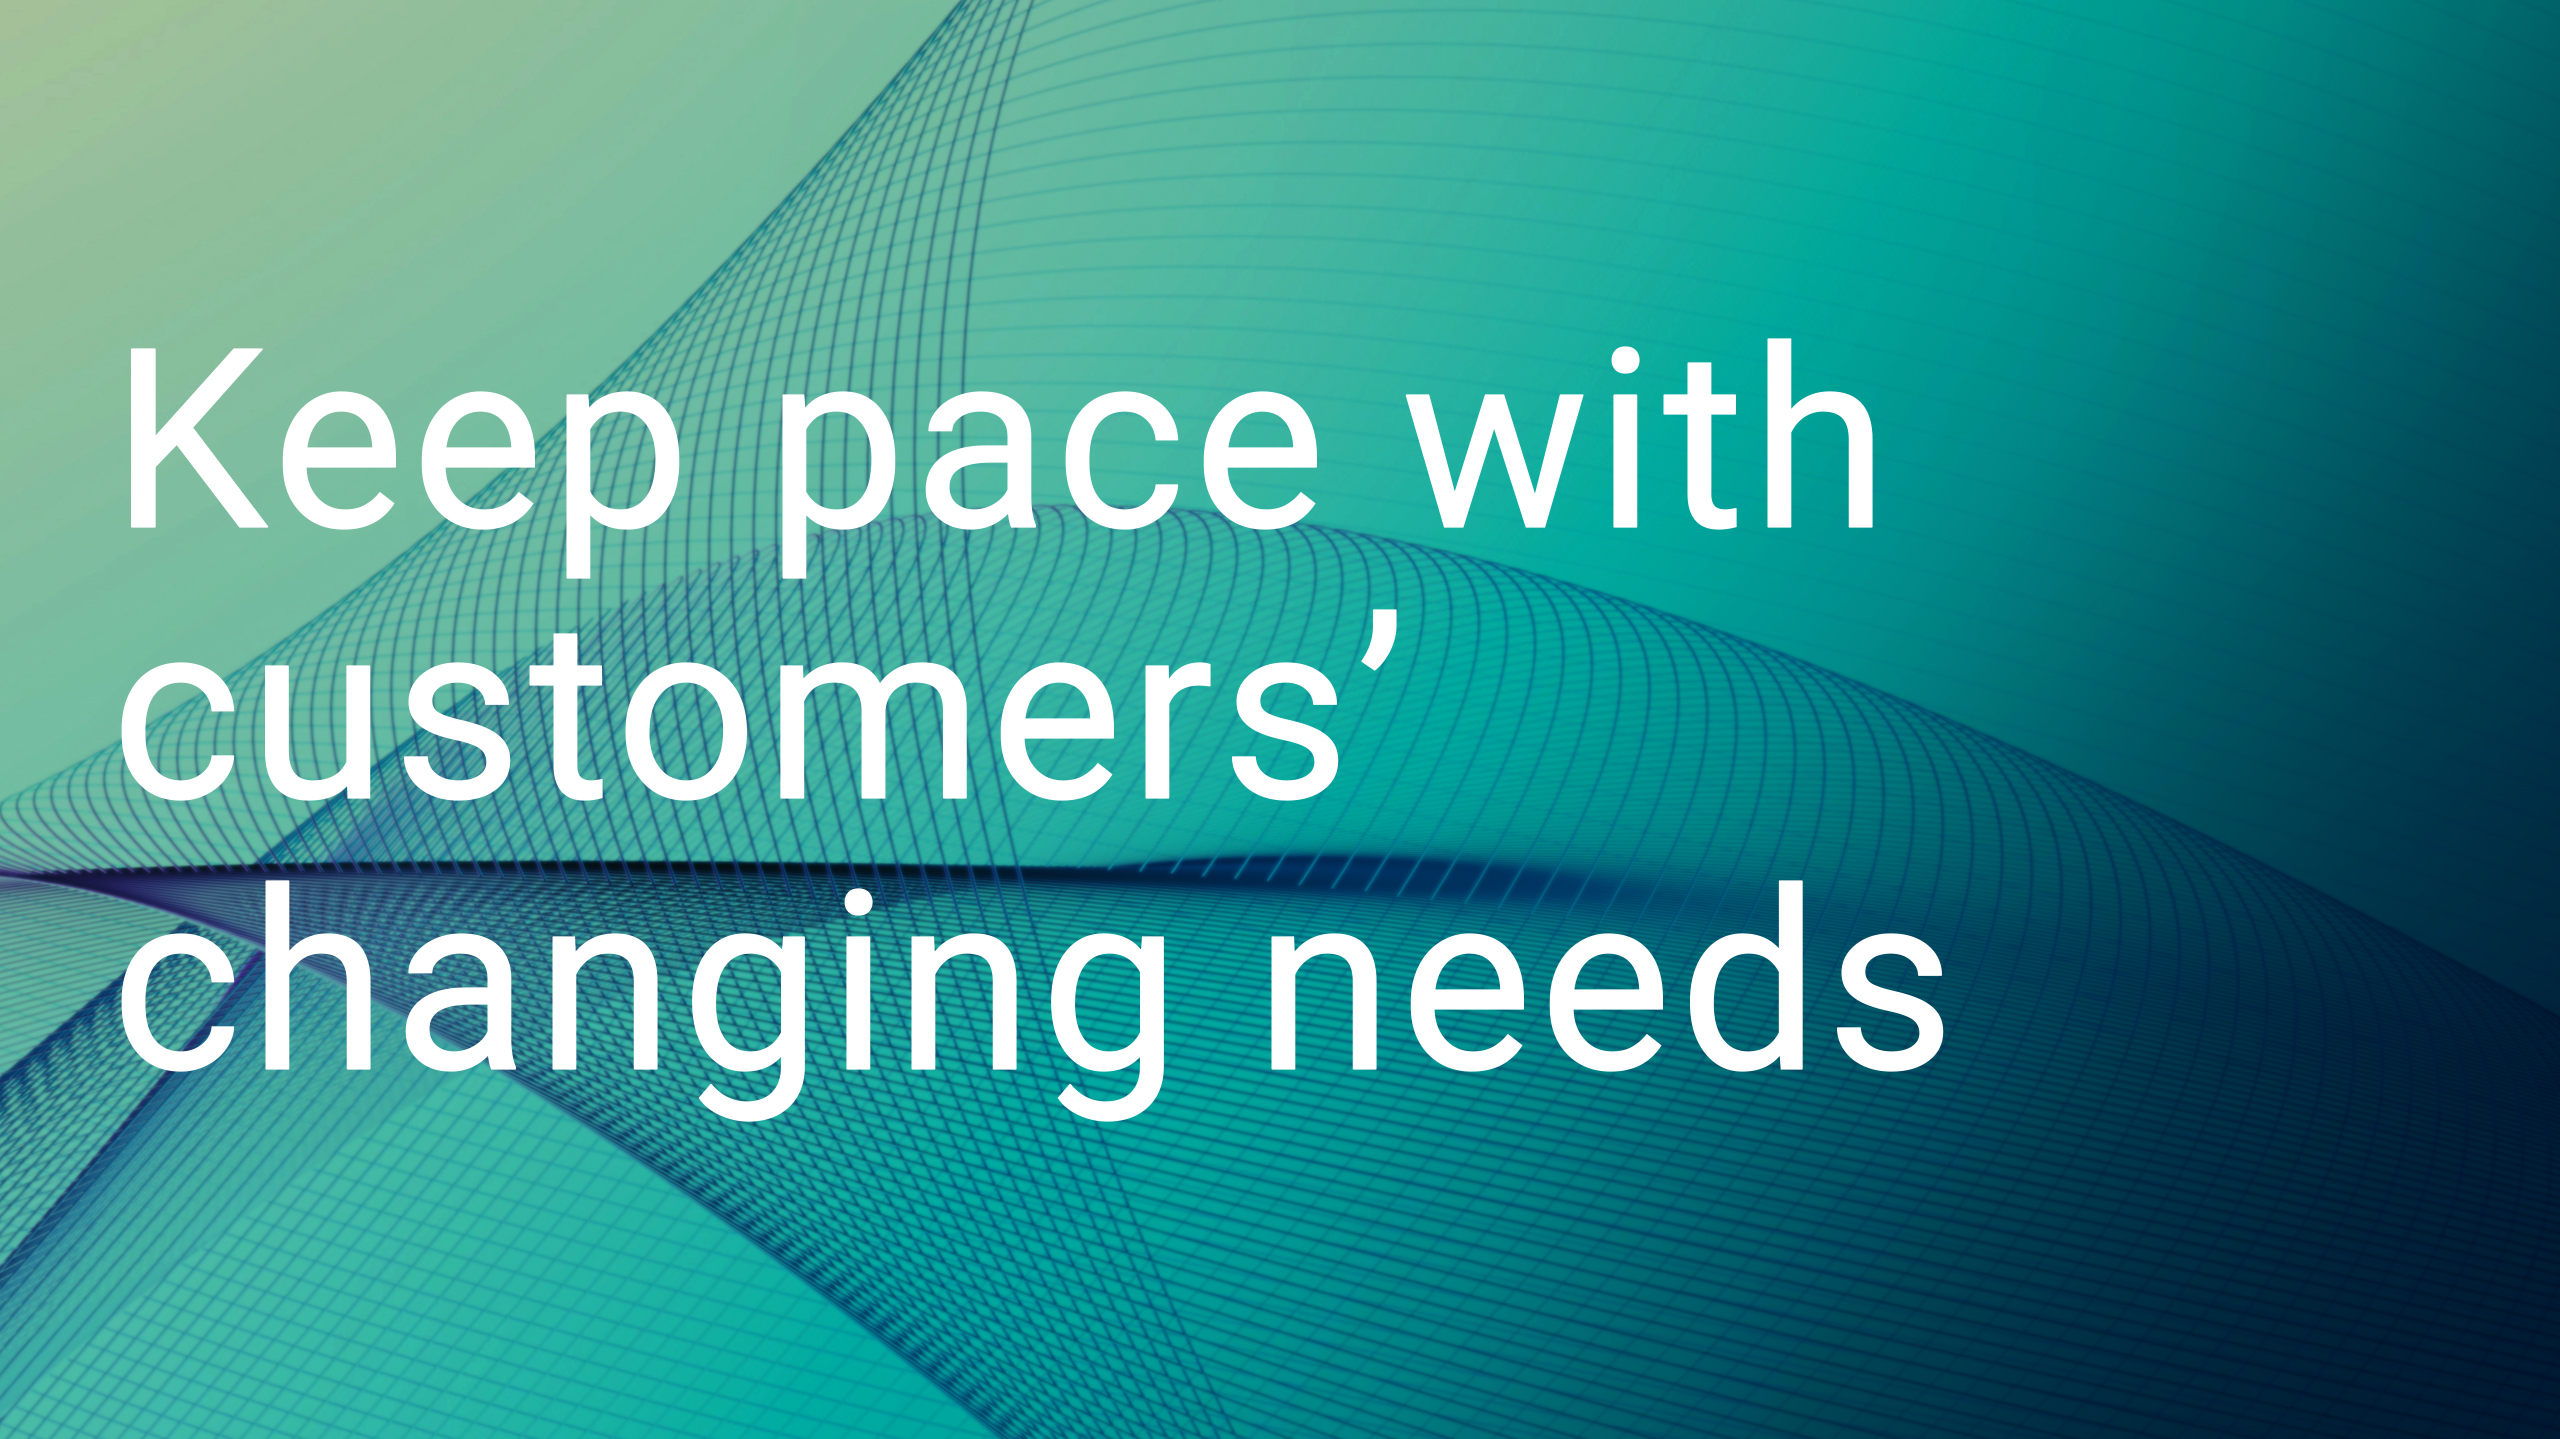 Keep pace with customers' changing needs image